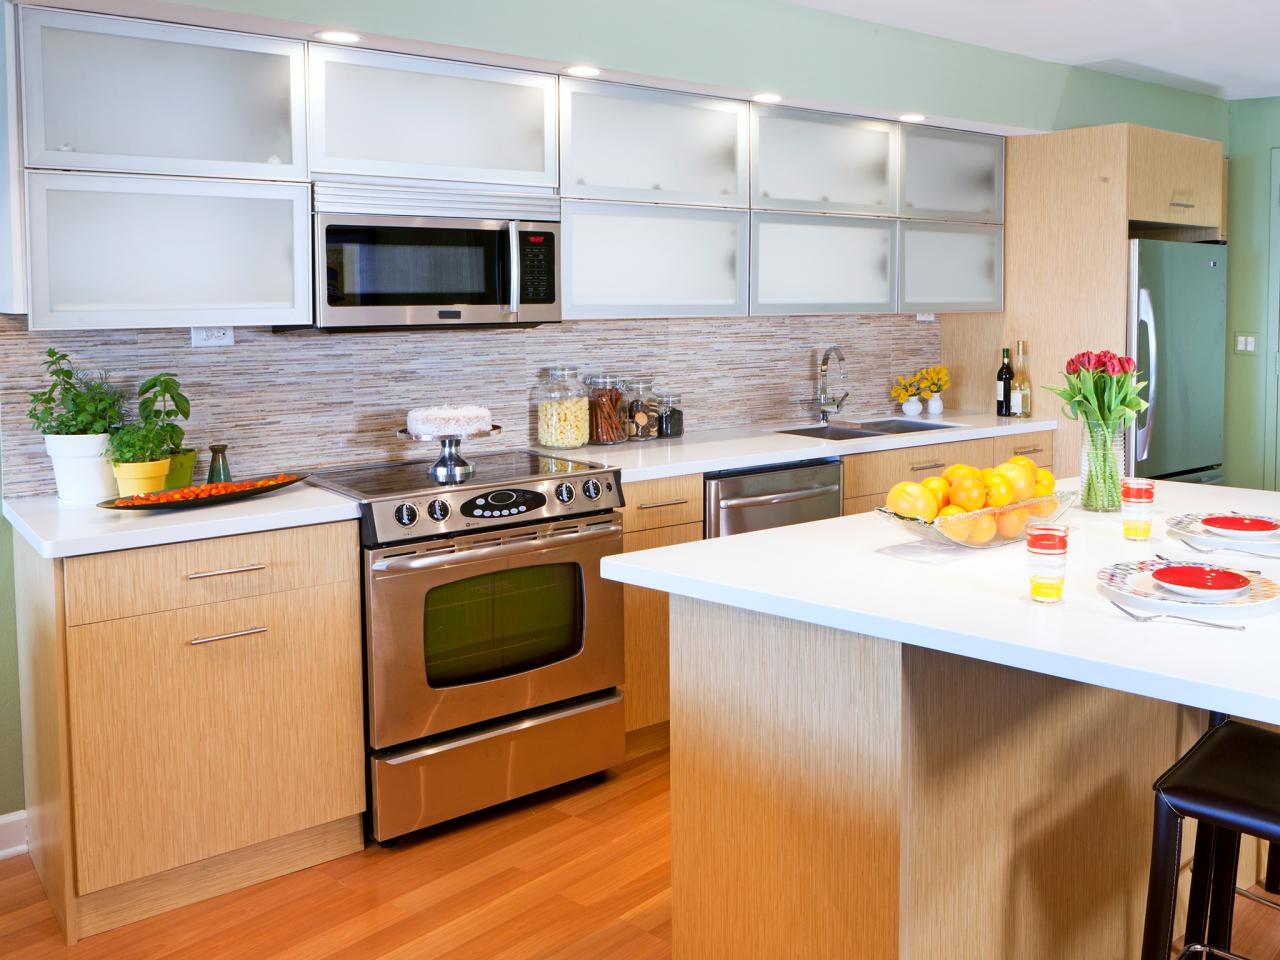 H2DSW211_Contemporary-Ready-Made-Kitchen-Cabinets_s4x3.jpg.rend.hgtvcom.1280.960